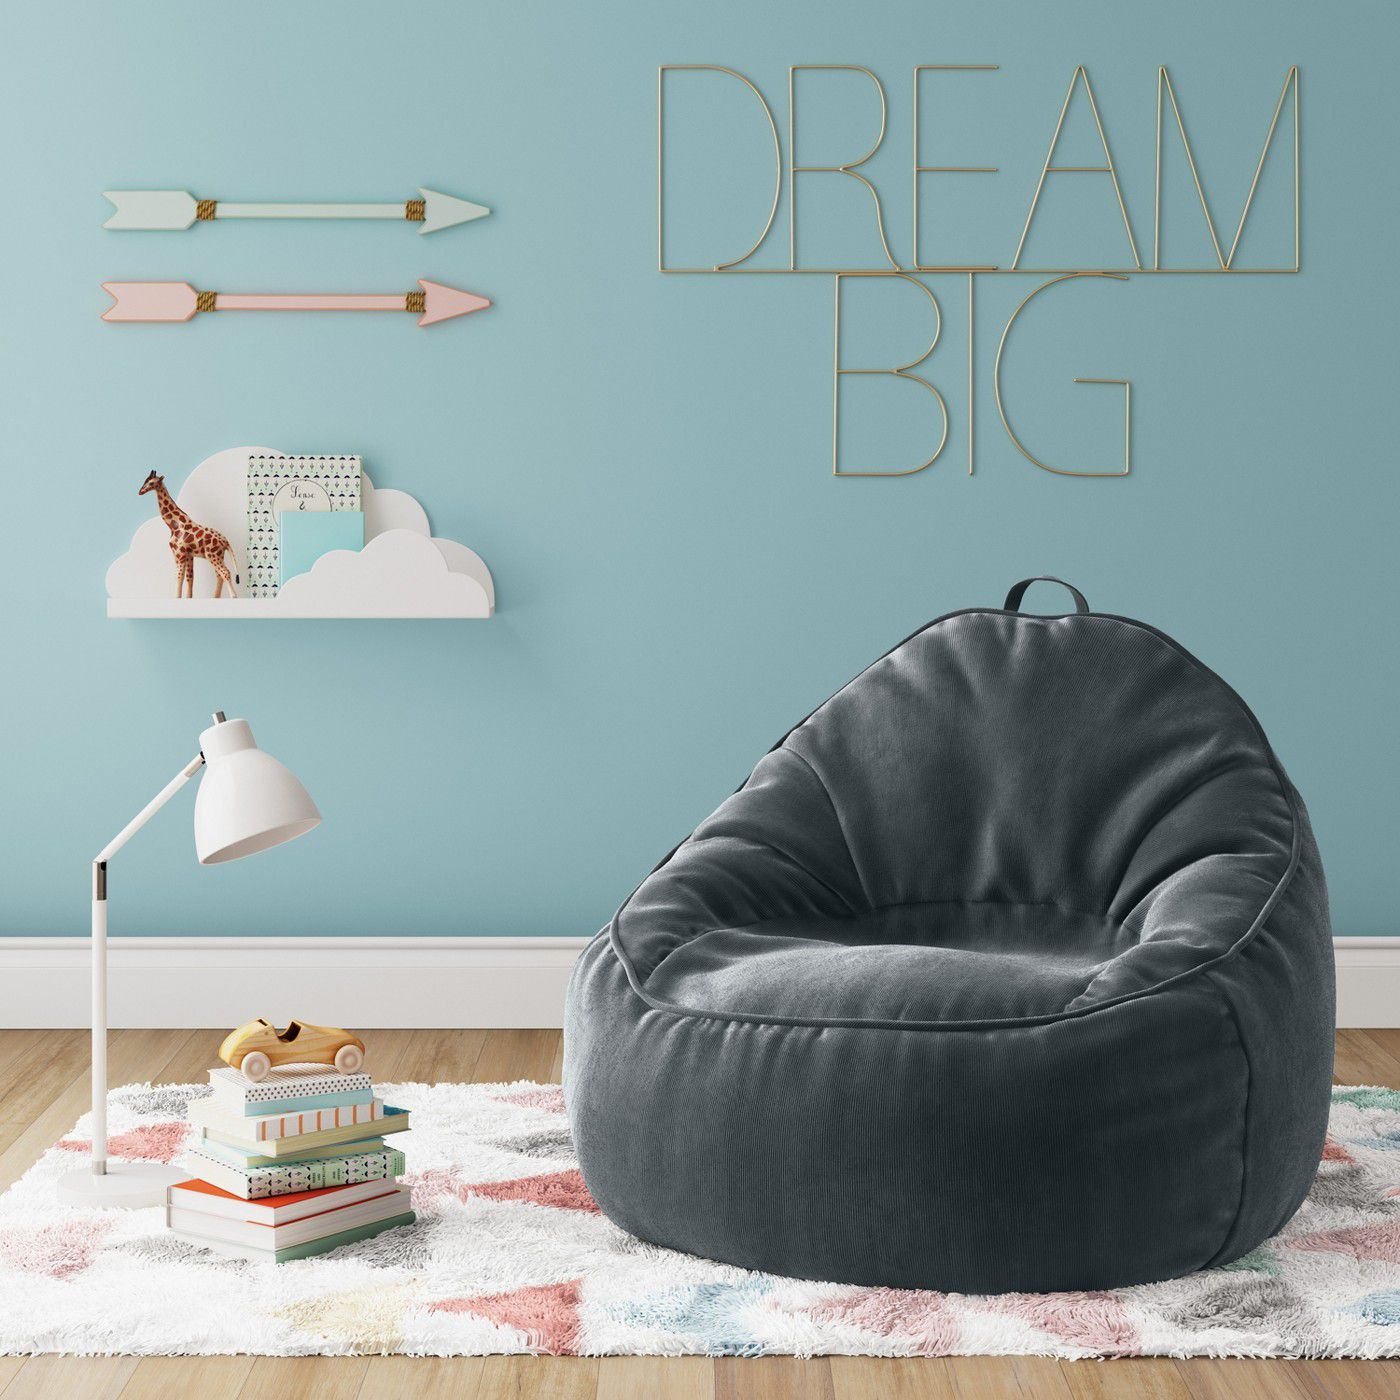 Where Can I Buy A Bean Bag Chair 7 Best Bean Bag Chairs Of 2019